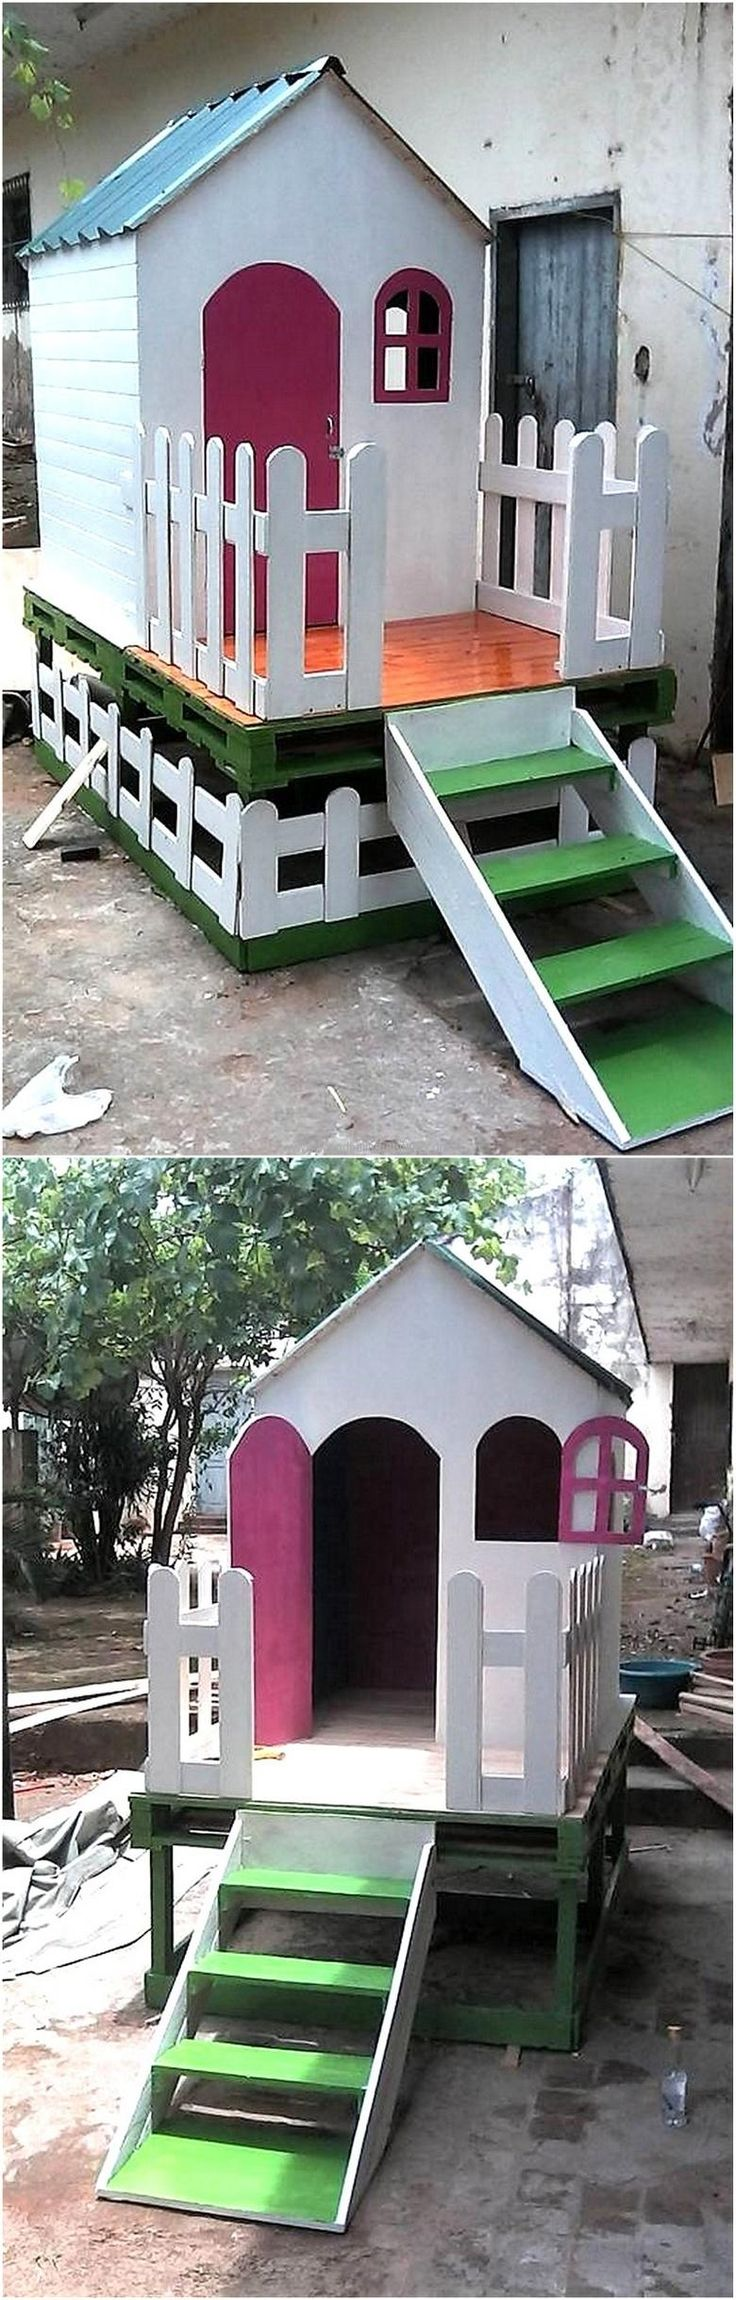 1001 pallets pallet kids playground here is a home made playground - Low Cost Diy Pallet Wood Creations